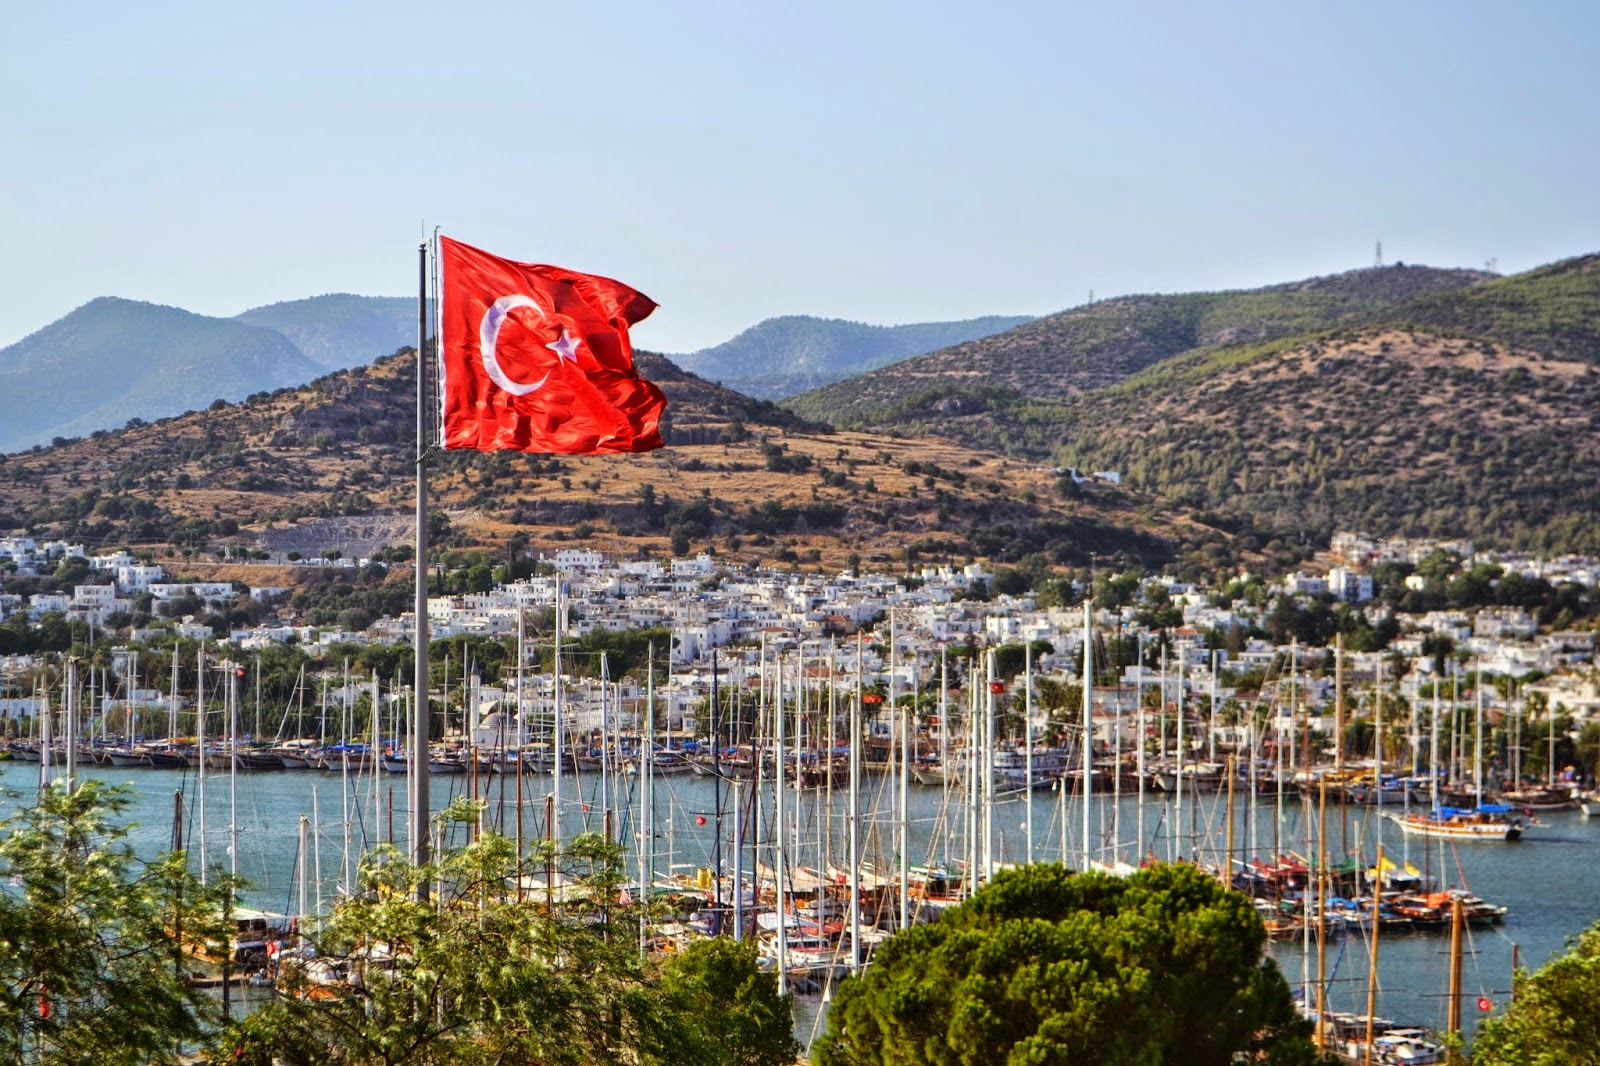 looking across the bay in Bodrum, Turkey. The Turkish flag can be seen in the foreground and behind that the bay filled with boats and the hillside covered in whitewashed houses.